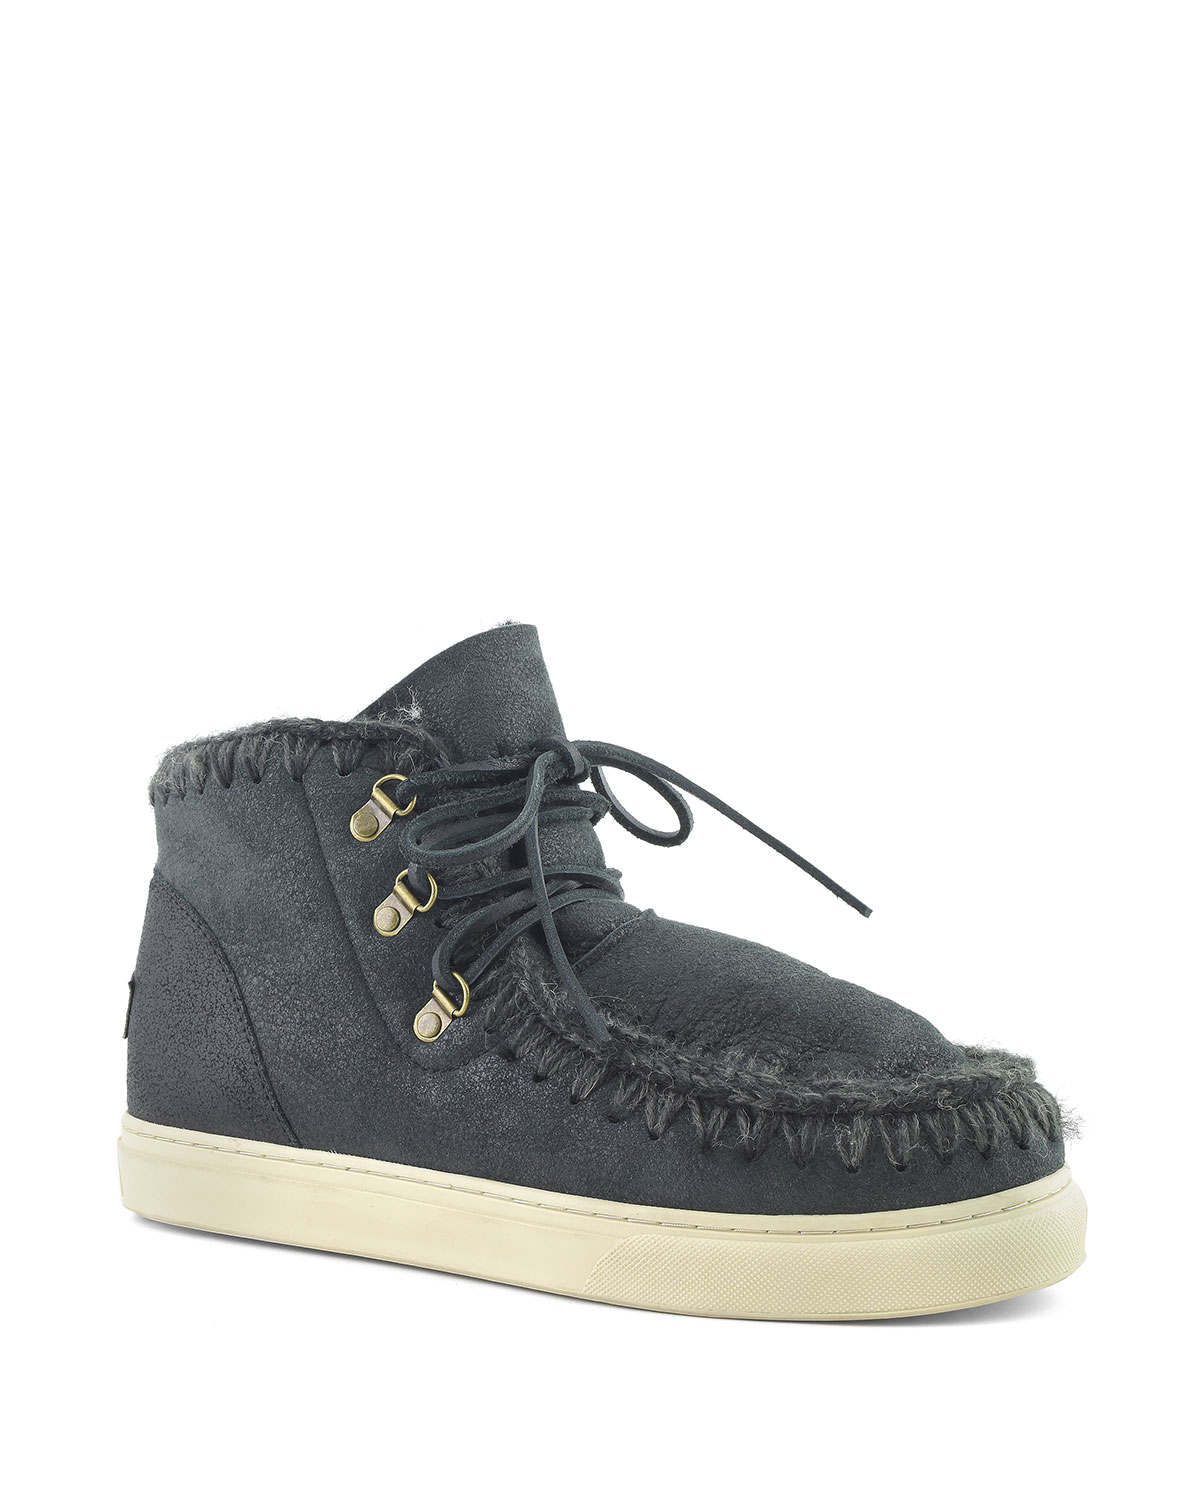 Mou KID'S SHEEPSKIN LACE-UP SNOW BOOT SNEAKERS